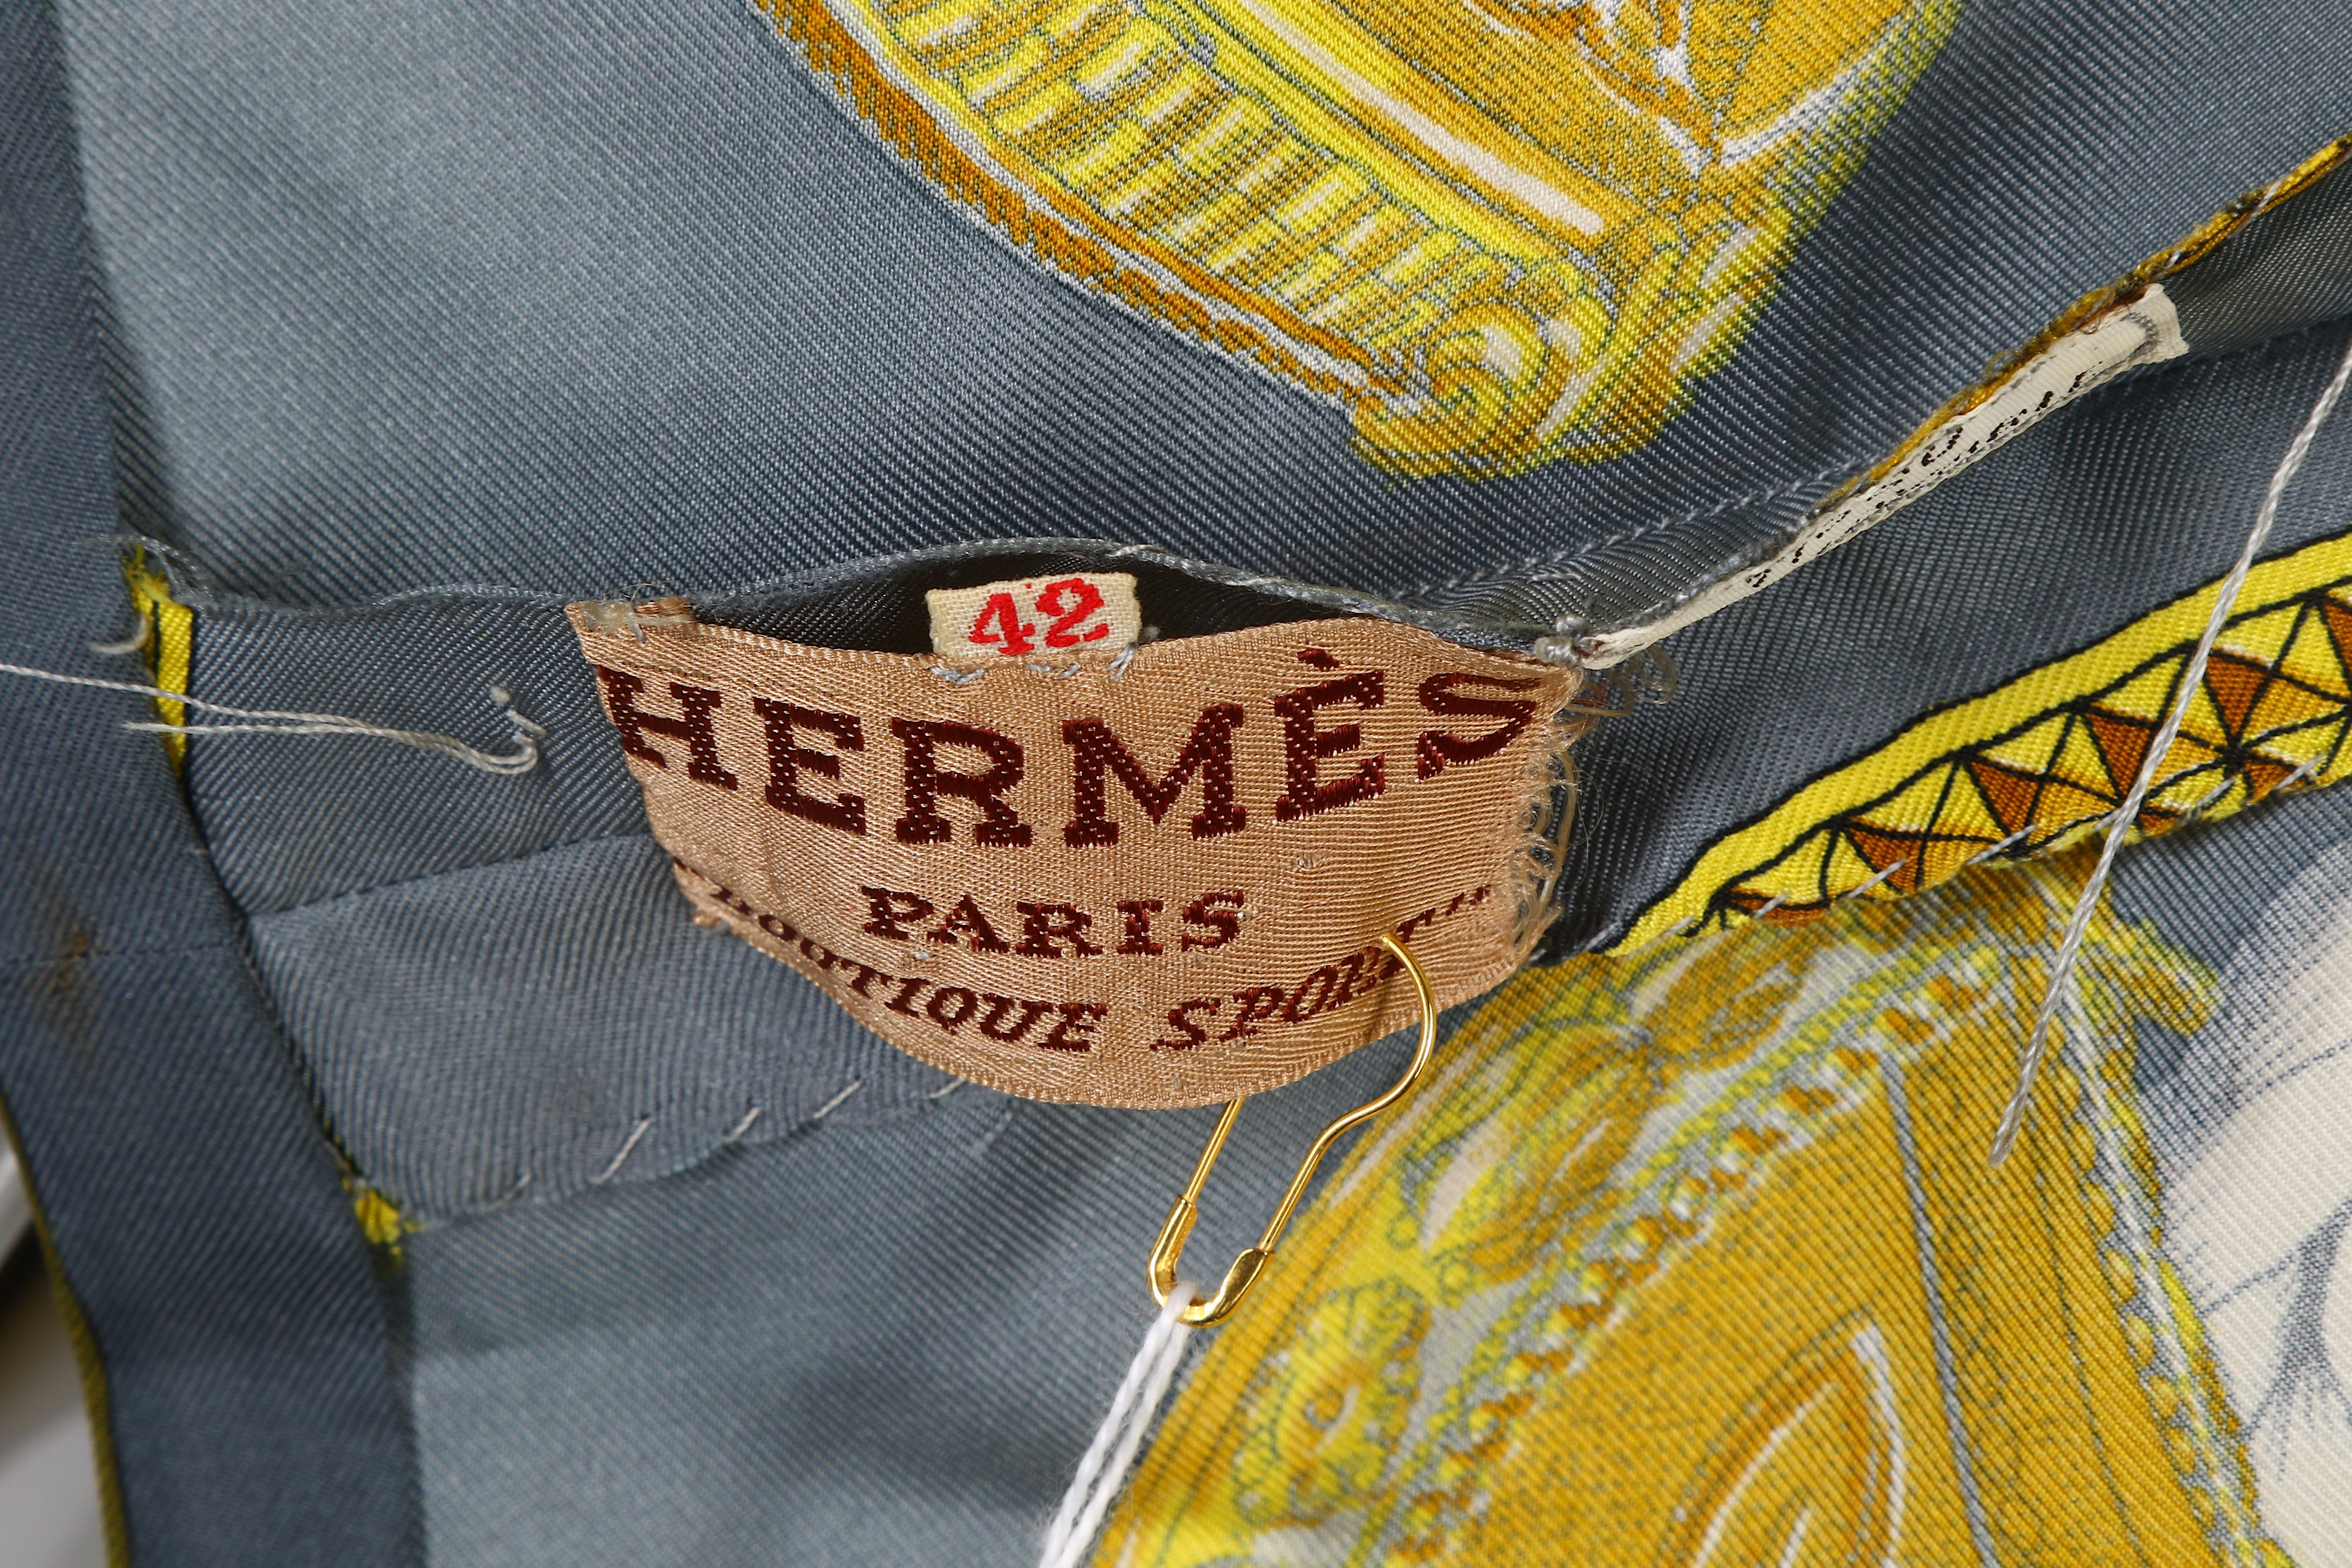 Lot 76 - Two Pieces of Hermes Silk Clothing - sizes 42 and 46